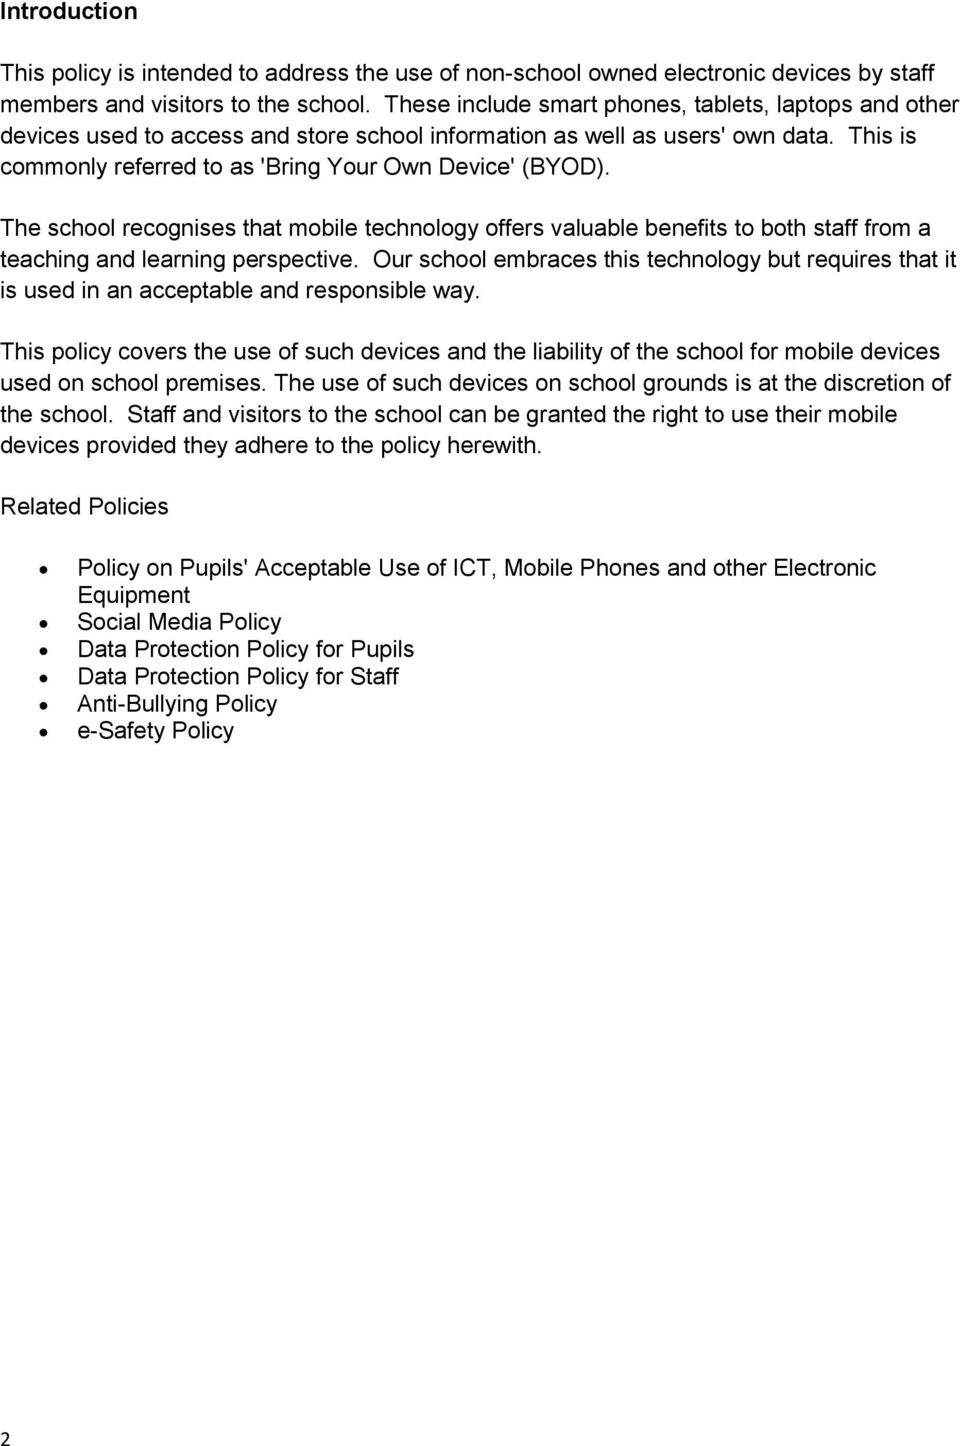 Bring Your Own Device (BYOD) for Staff and Visitors - PDF